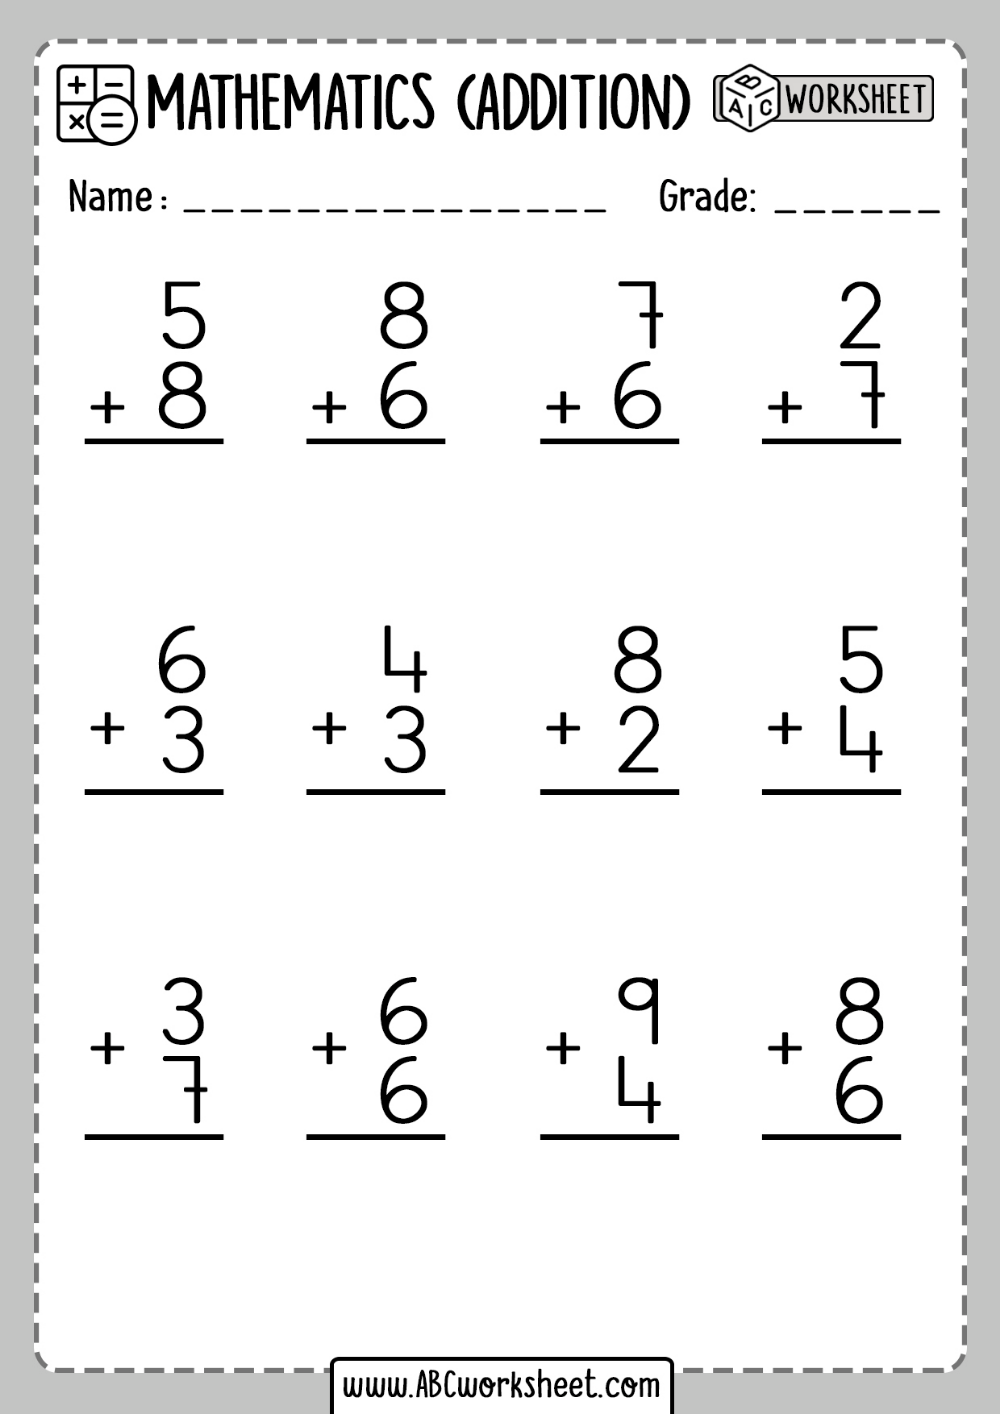 hight resolution of Addition Worksheet First Grade   Addition worksheets